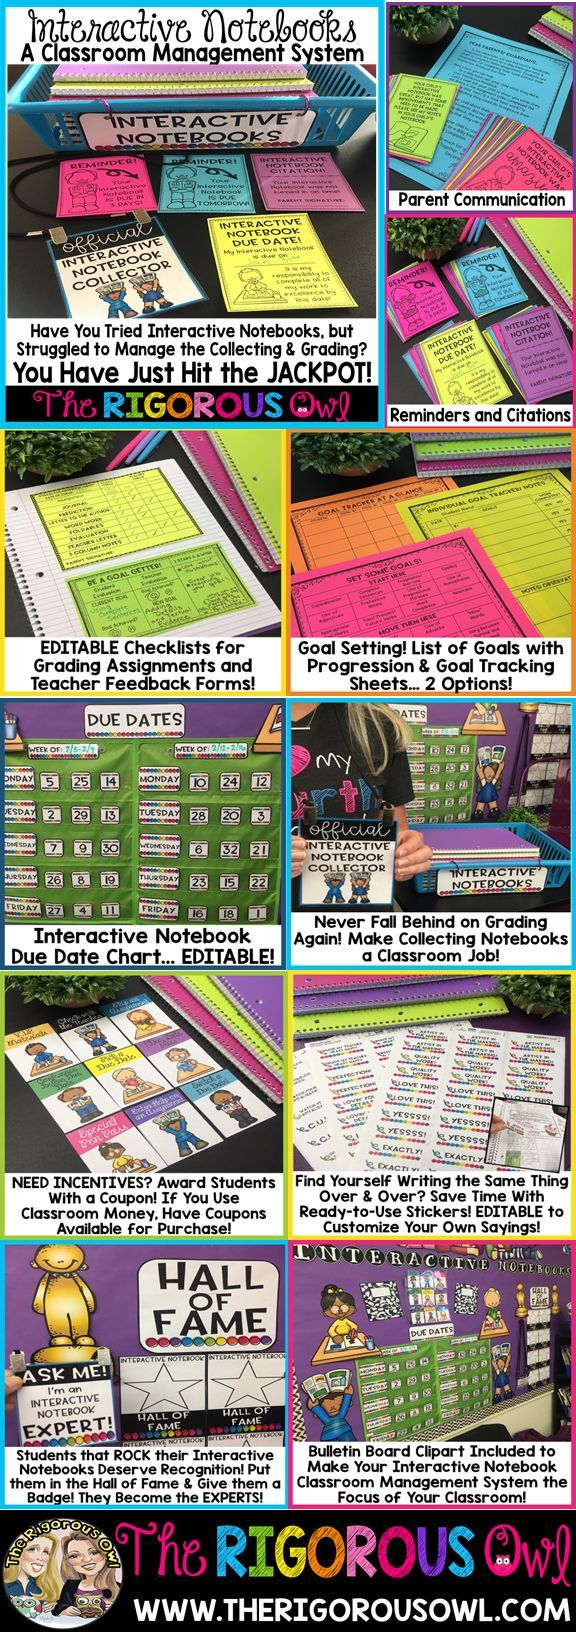 Interactive Notebooks are the best! Grading Interactive Notebooks not so much...until now! We have simplified grading Interactive Notebooks. Grab this resource now! You will save so much time!